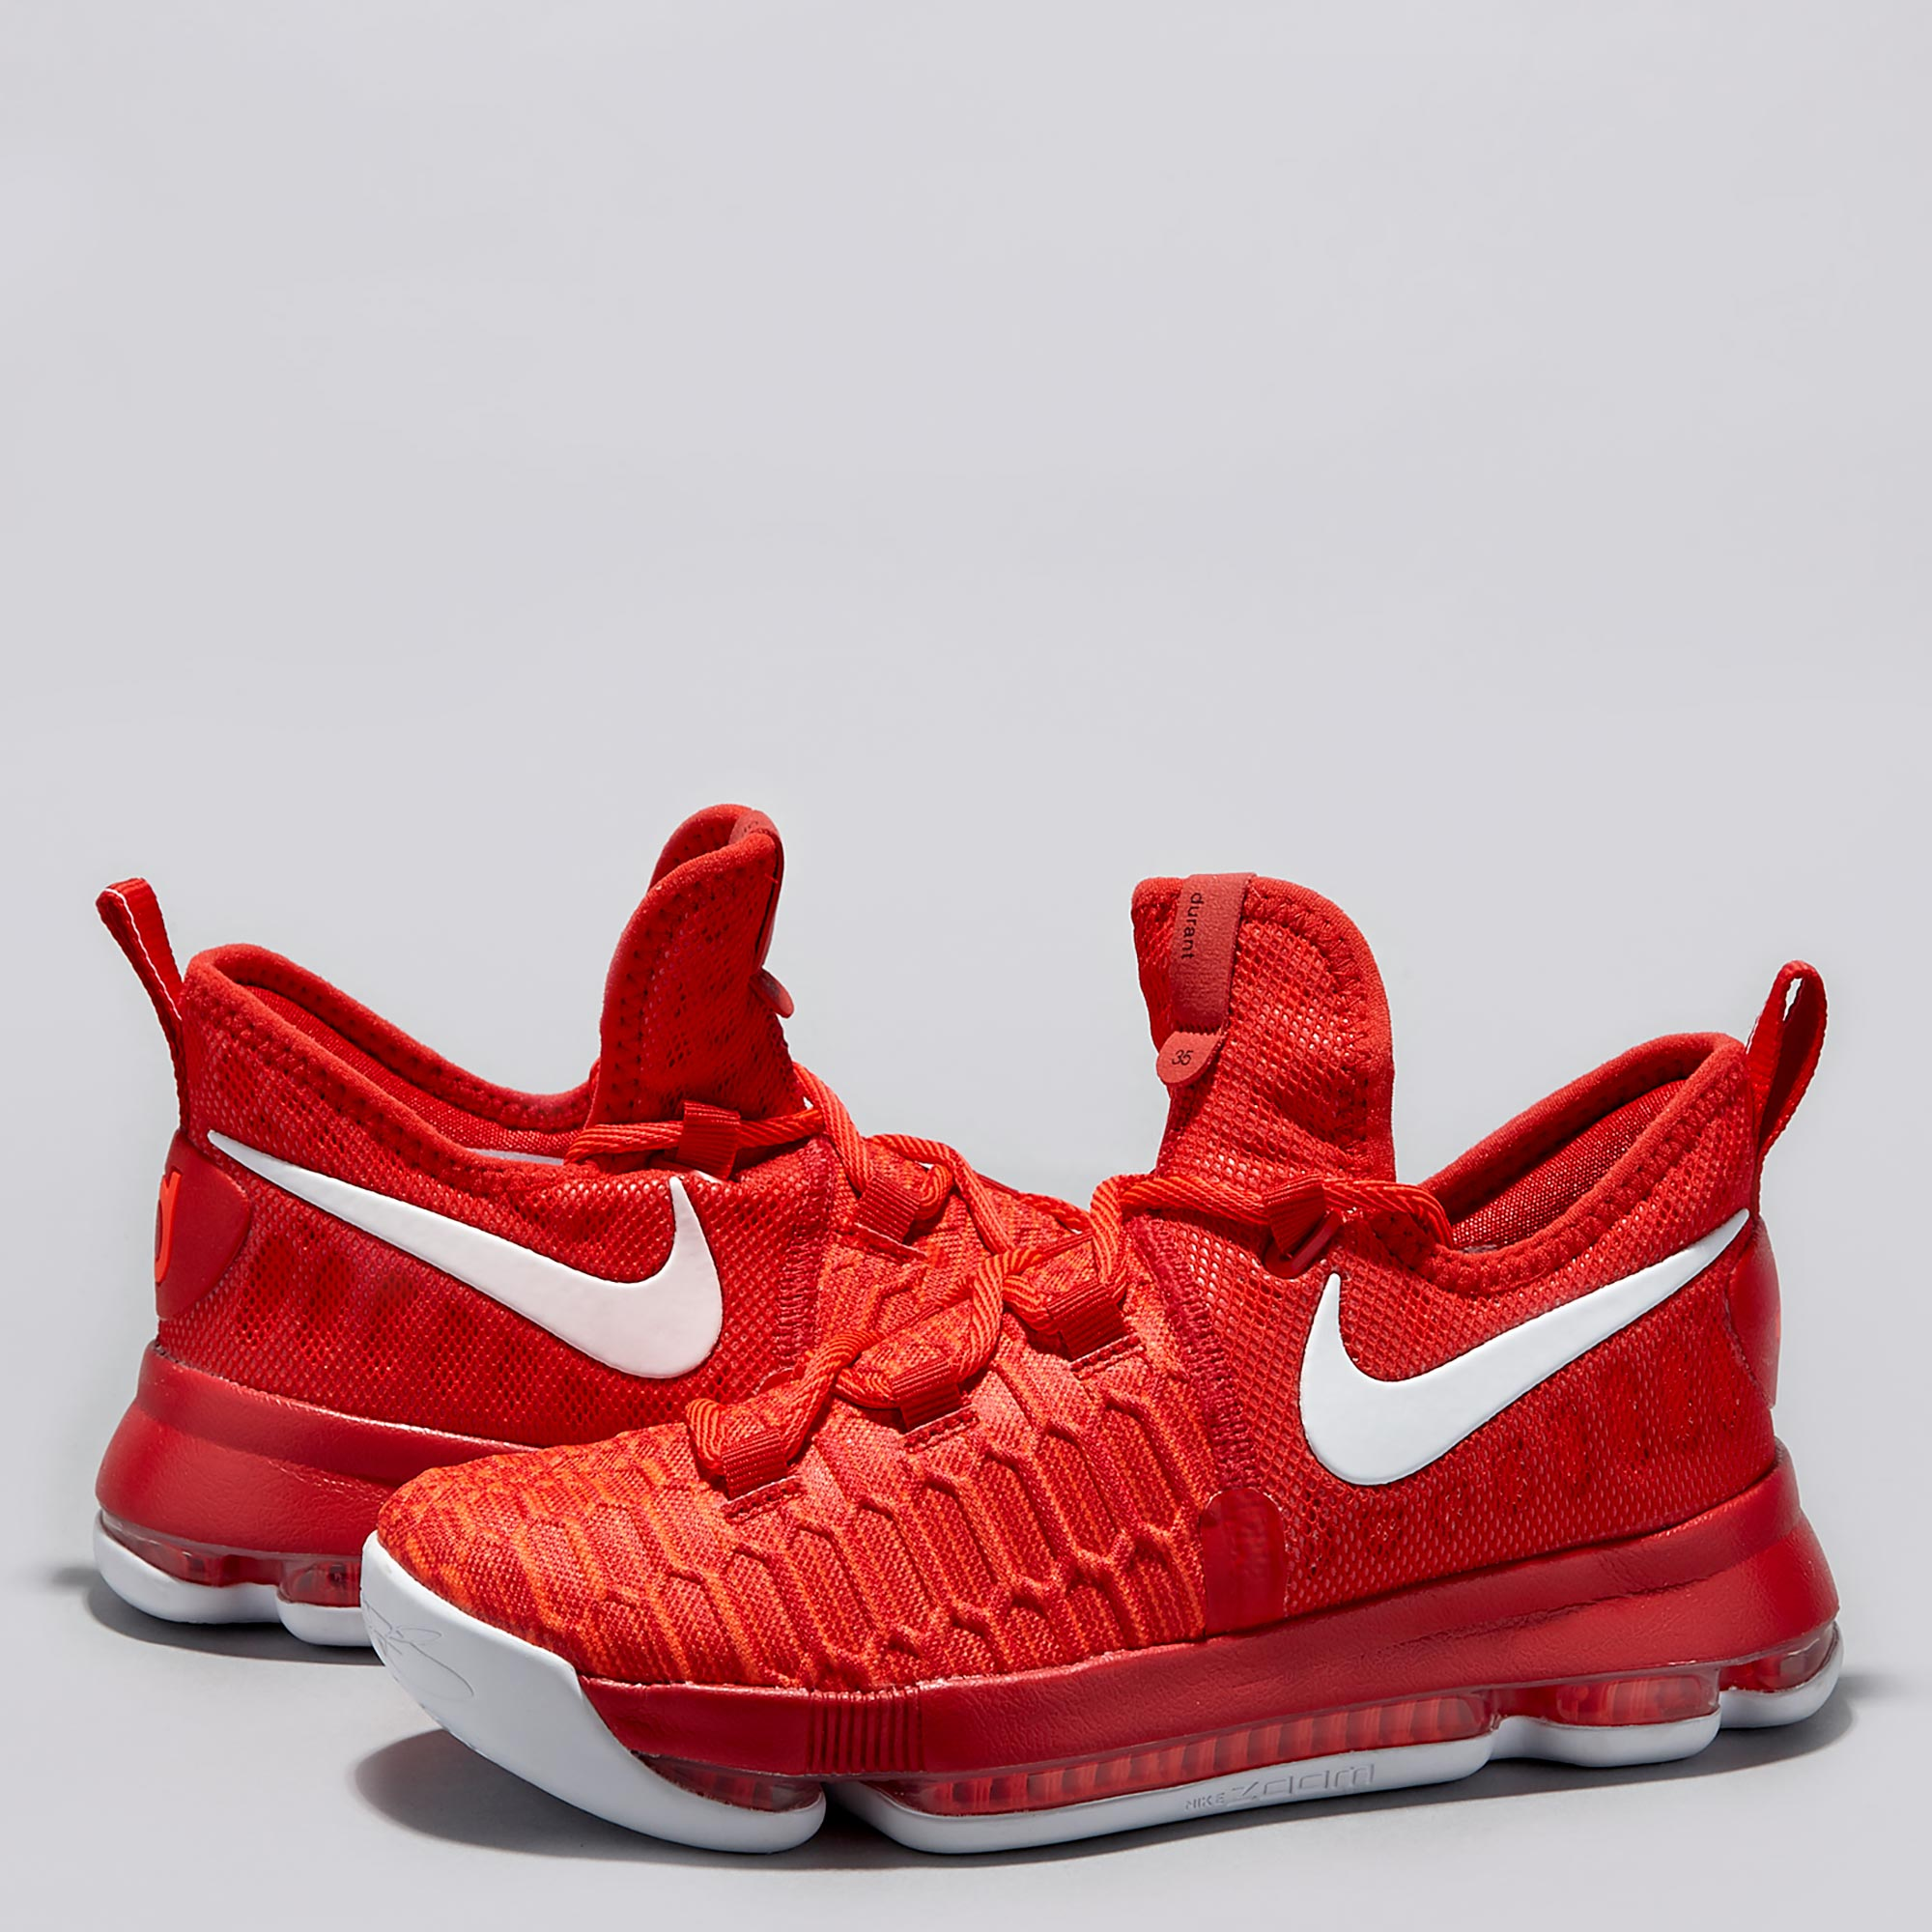 Nike KD 9 Basketball Shoe - University Red/White - Youth